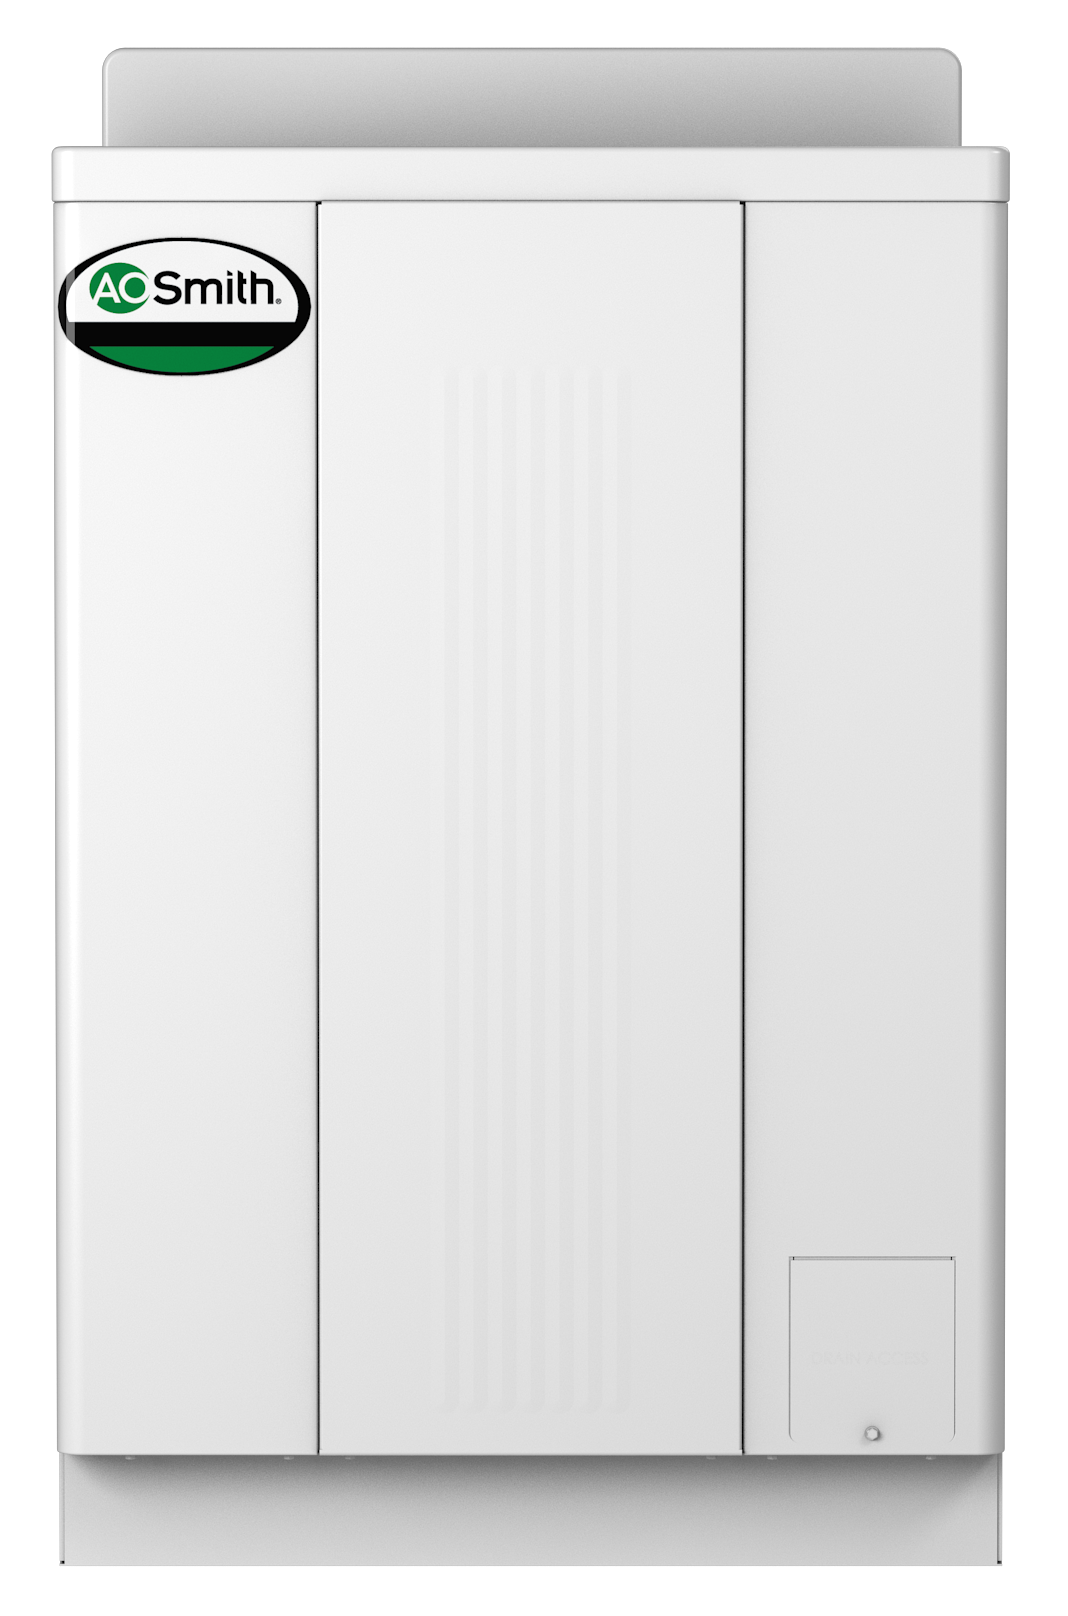 Residential A O Smith Water Heaters